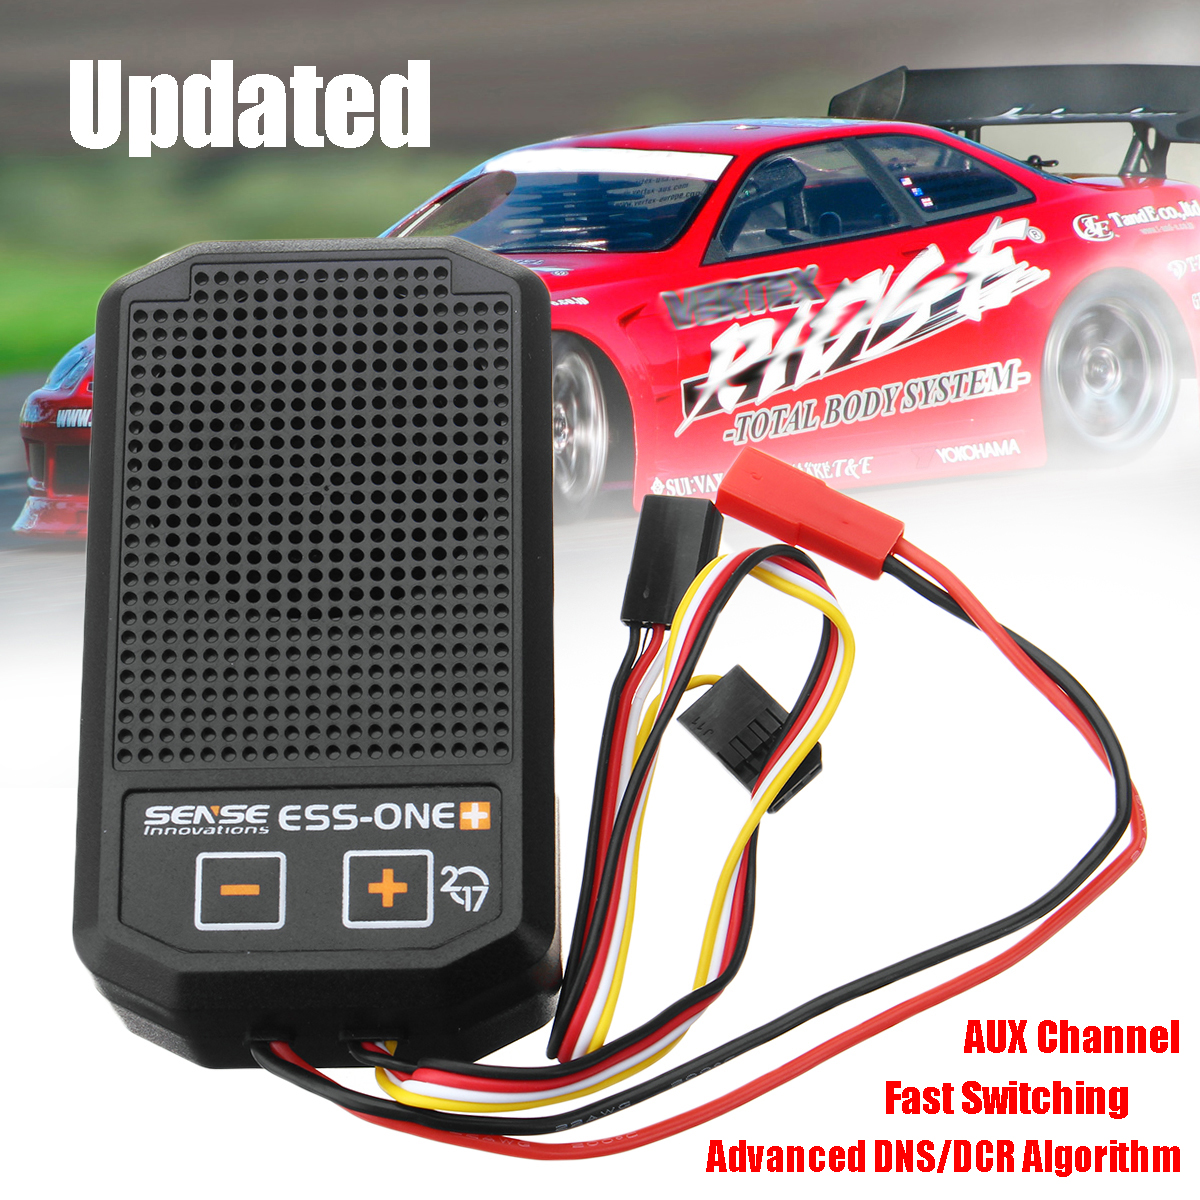 Sense Innovations One Plus 2017 Real Engine Sound Simulator Kit RC Car Parts Advanced DNS/DCR Overload Protected IntelligentSense Innovations One Plus 2017 Real Engine Sound Simulator Kit RC Car Parts Advanced DNS/DCR Overload Protected Intelligent